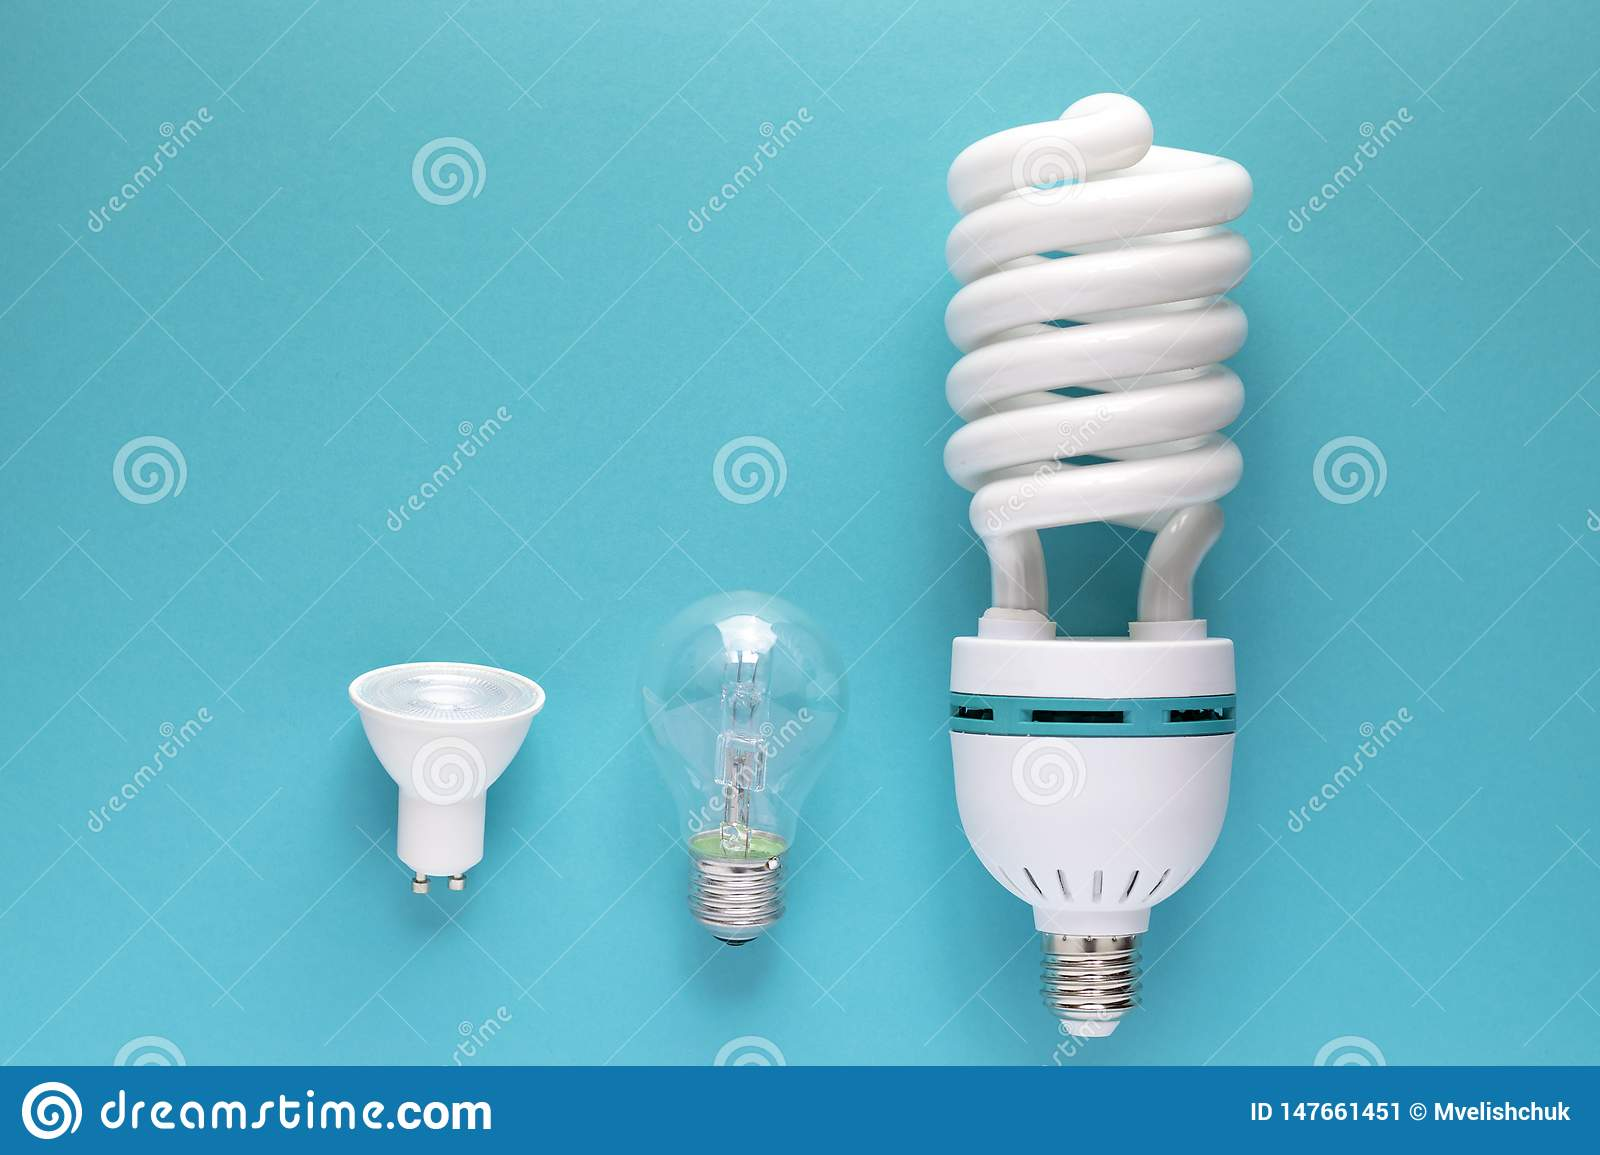 Close up view of white light bulb